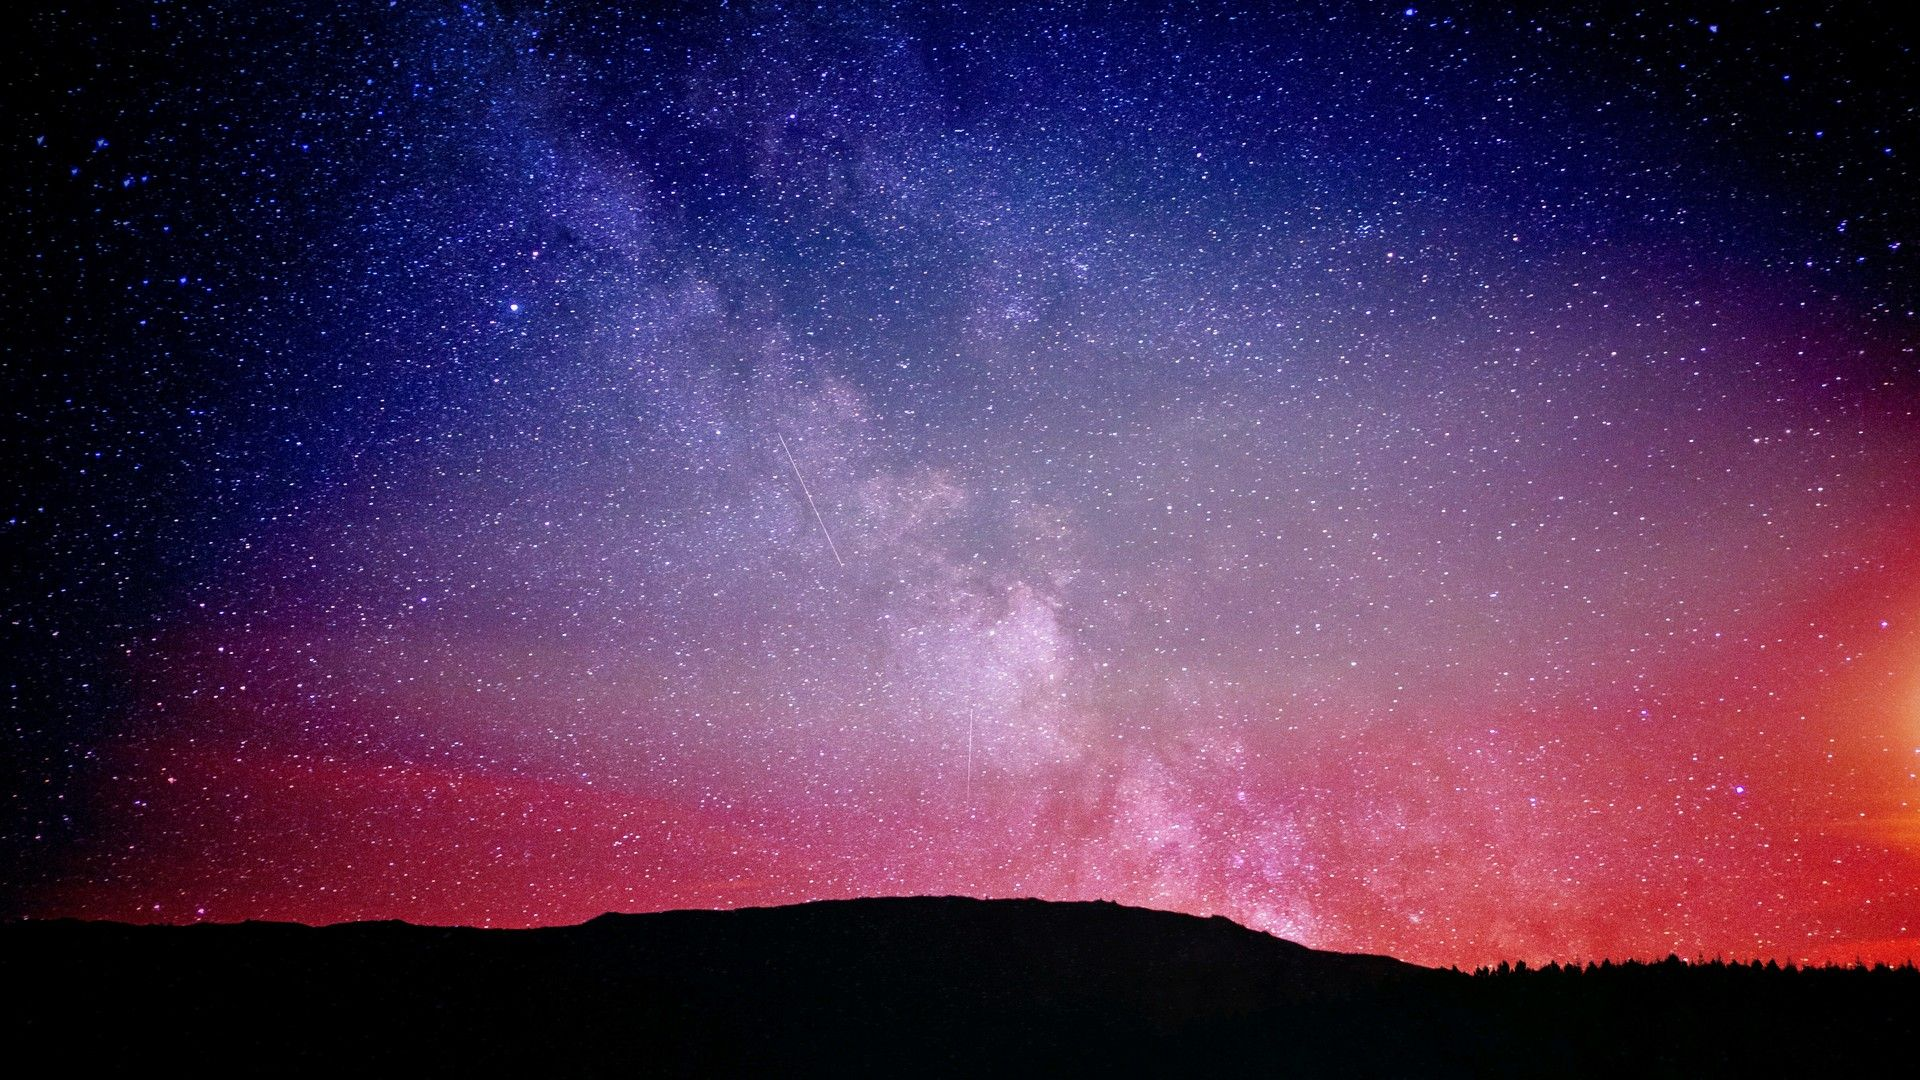 Night Sky 1920x1080 Wallpapers Top Free Night Sky